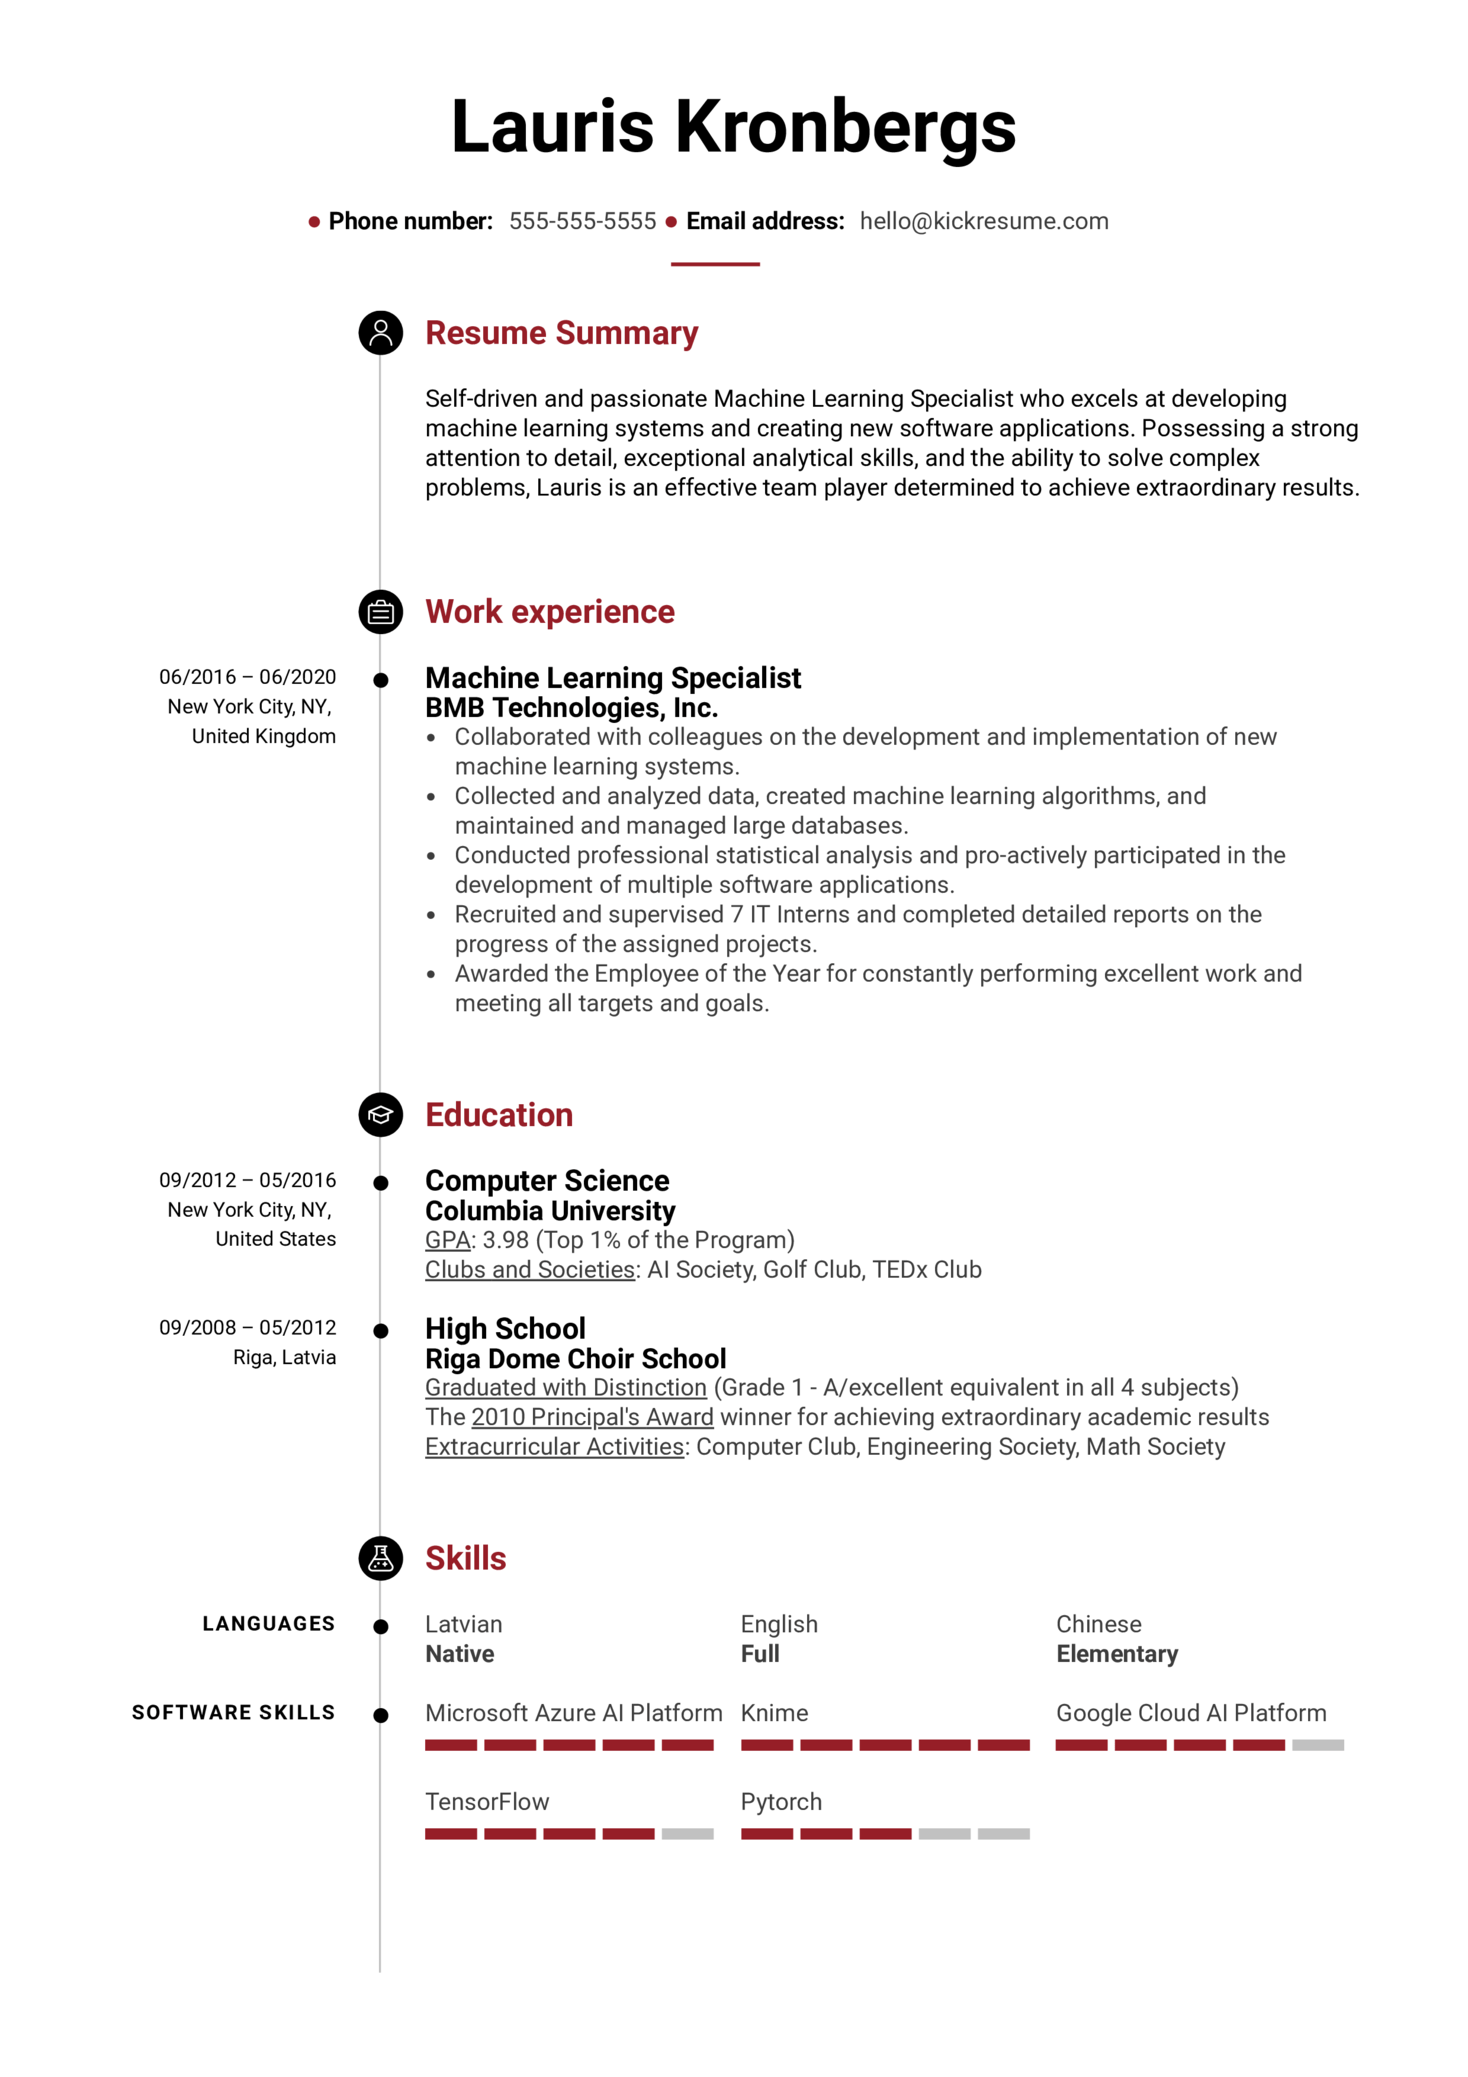 Machine Learning Specialist Resume Example (časť 1)